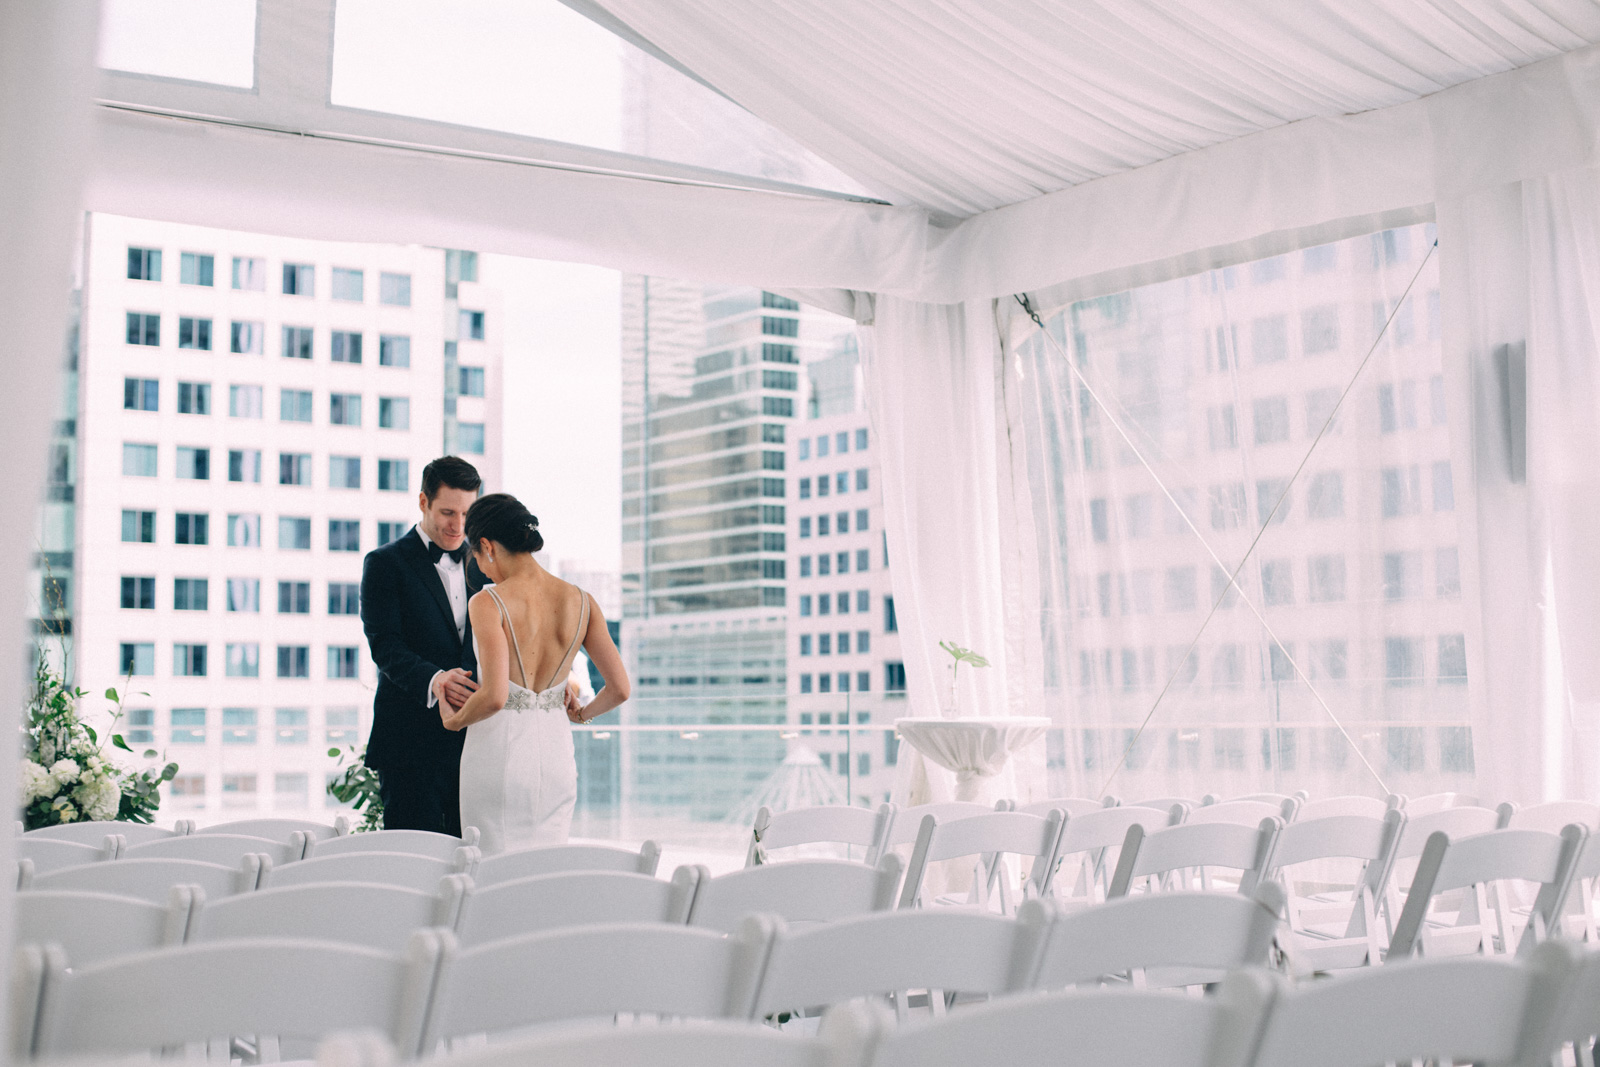 Malaparte-wedding-photography-Toronto-by-Sam-Wong-of-Visual-Cravings_26